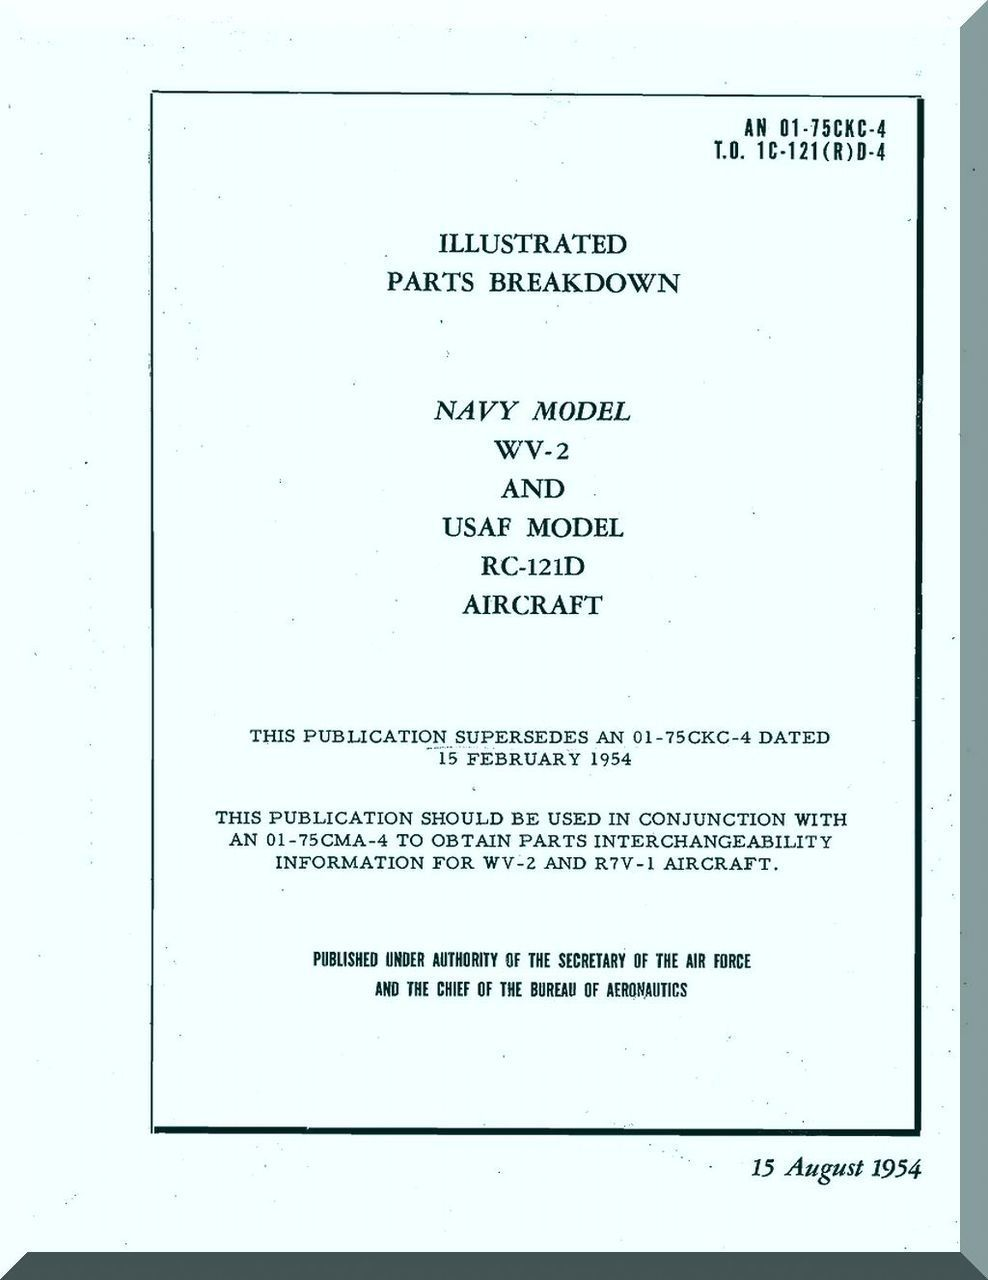 Lockheed Wv 2 Rc 121d Aircraft Illustrated Parts Breakdown Manual Helicopter Diagram An 01 75ckc 4 1954 Reports Manuals Engines